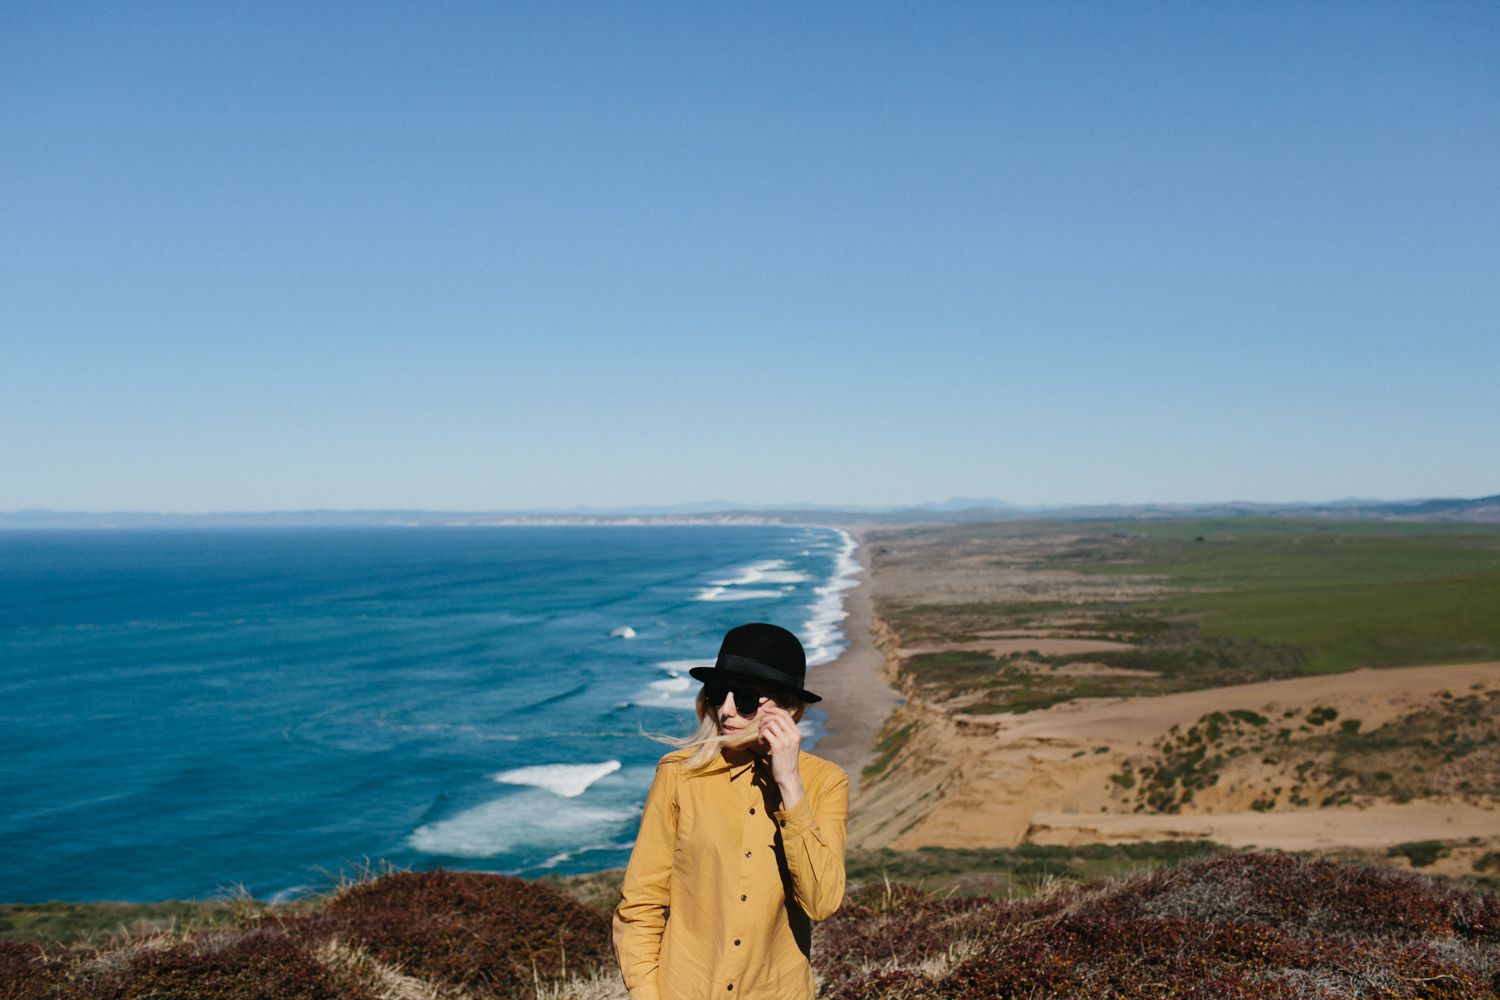 Point Reyes California Lifestyle Photography Wedding Photographer Mae Stier-010.jpg